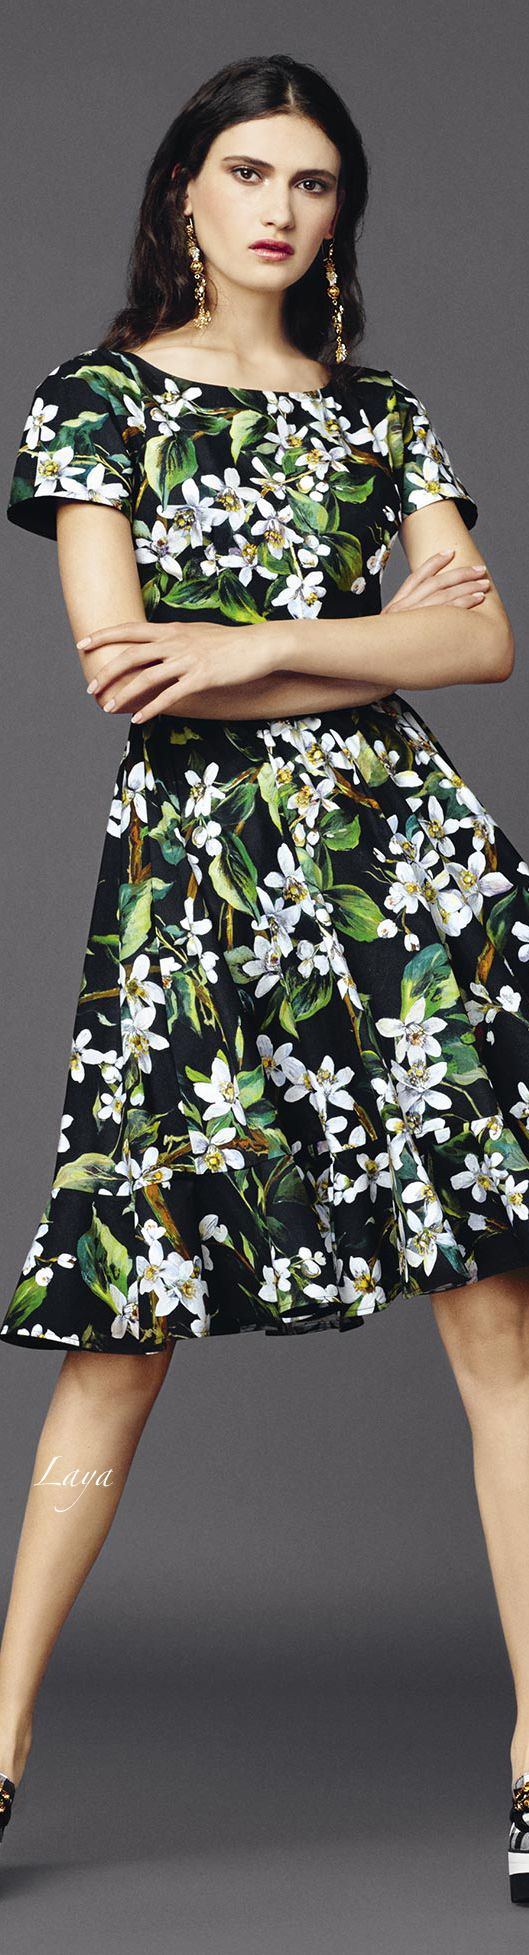 DOLCE & GABBANA Summer 2015 women fashion outfit clothing style apparel @roressclothes closet ideas